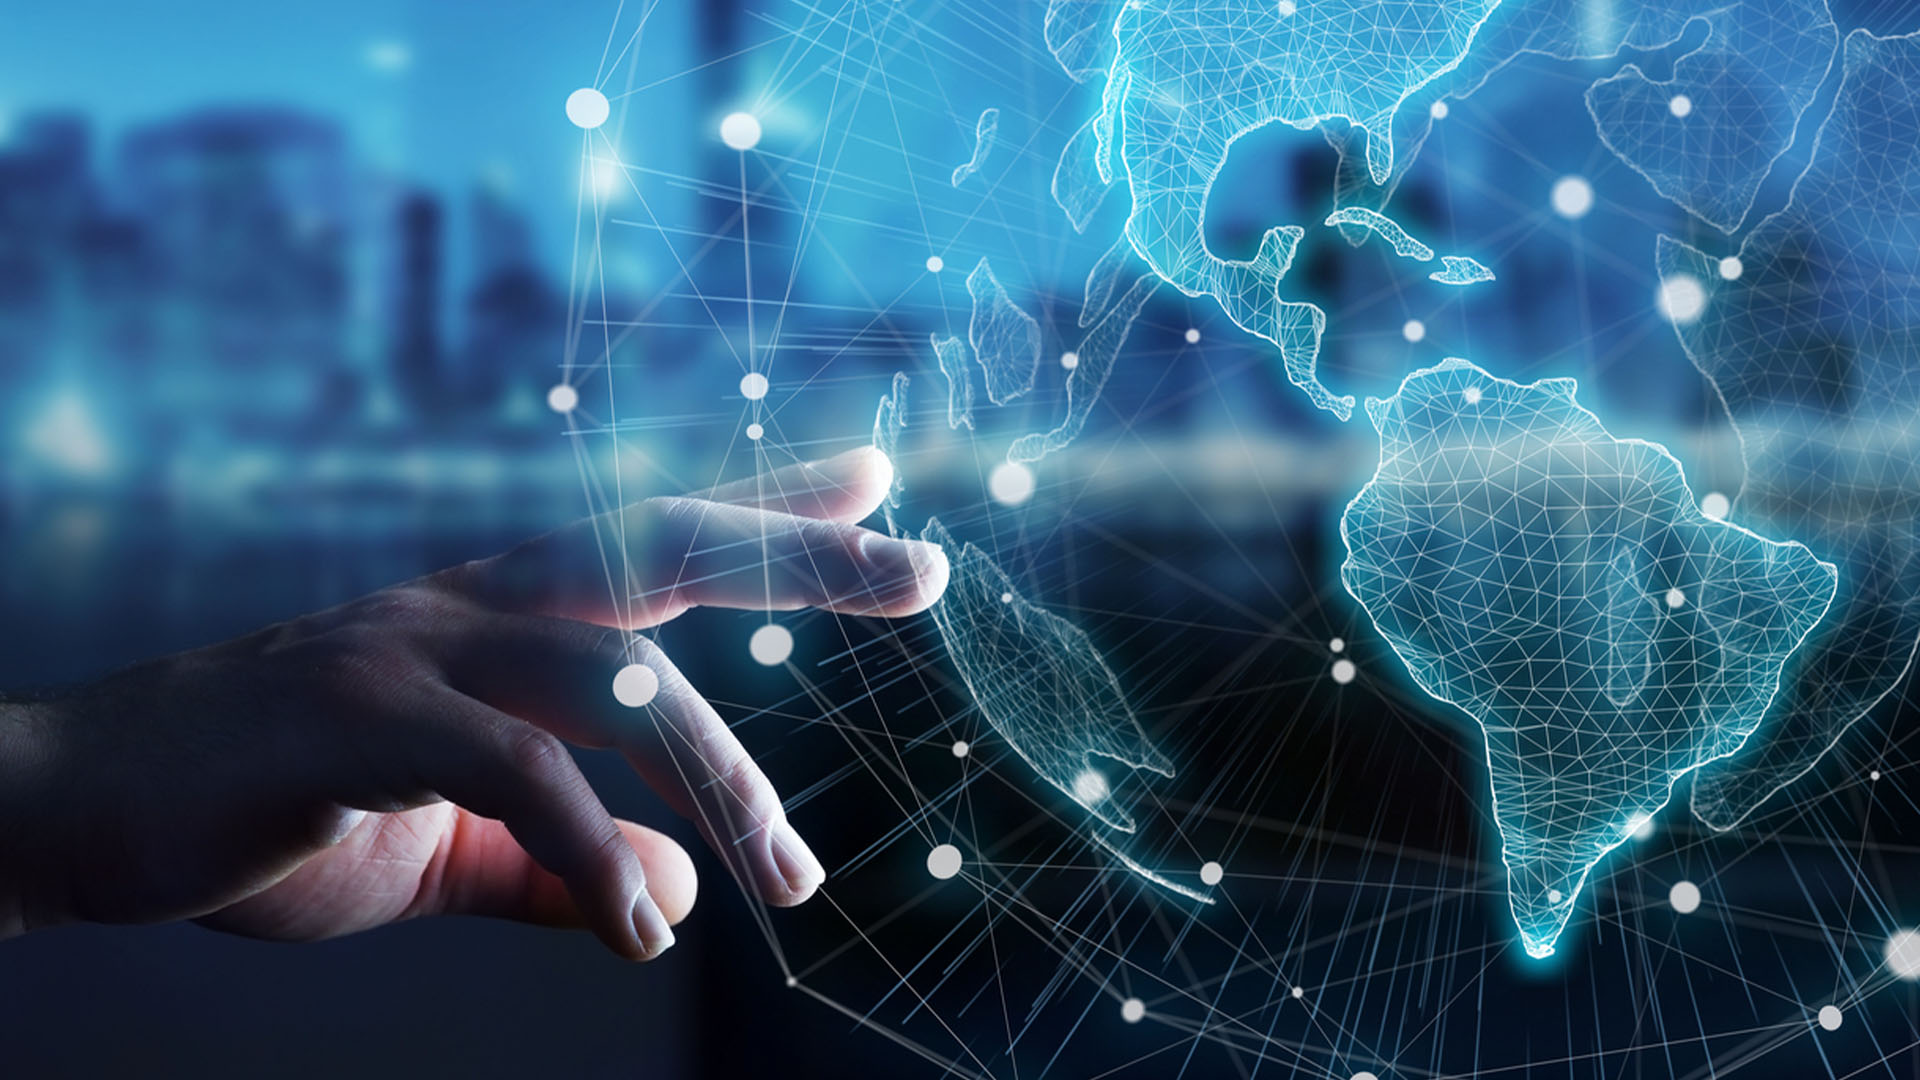 Technology-innovation-global-hub-hand-point-connect